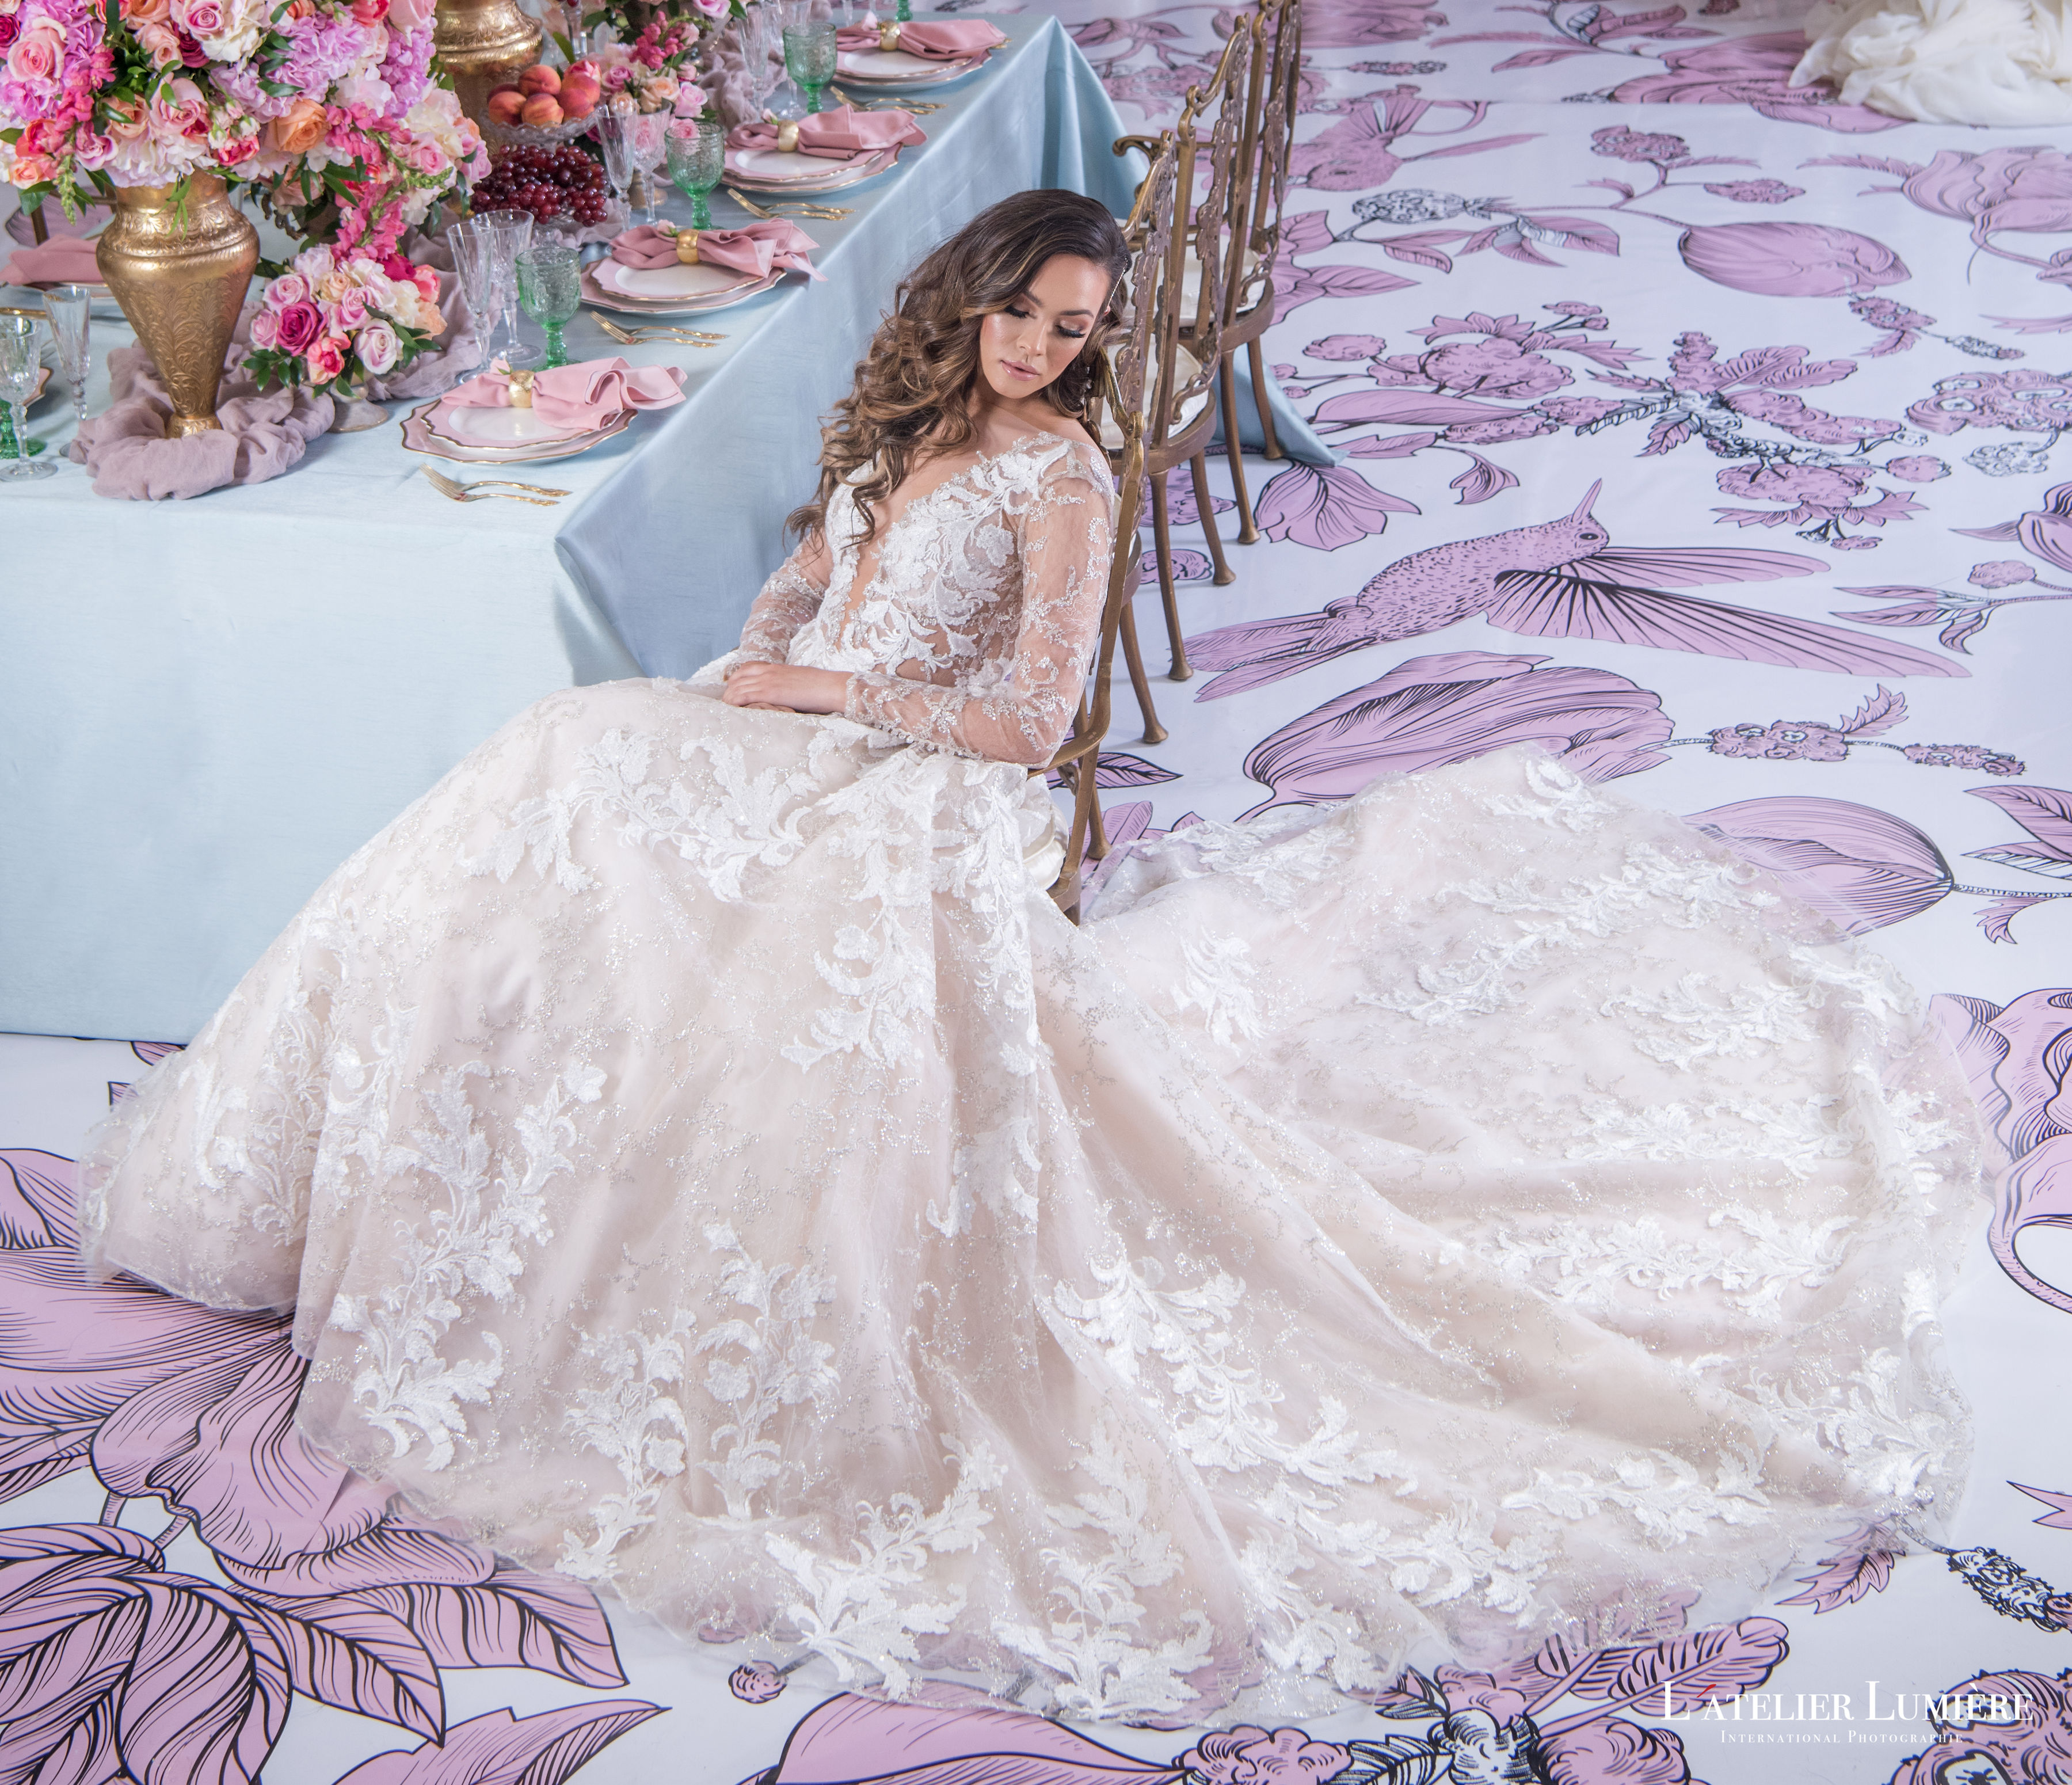 Blushing Bridal Boutique ,Milla Nova, Softy, California Dreaming, New Collection 2019couture,illusion,bridal,wedding,wedding gown,woodbridge,vaughan,mississauga,toronto,gta,ontario,canada,USA,sayyestothedress